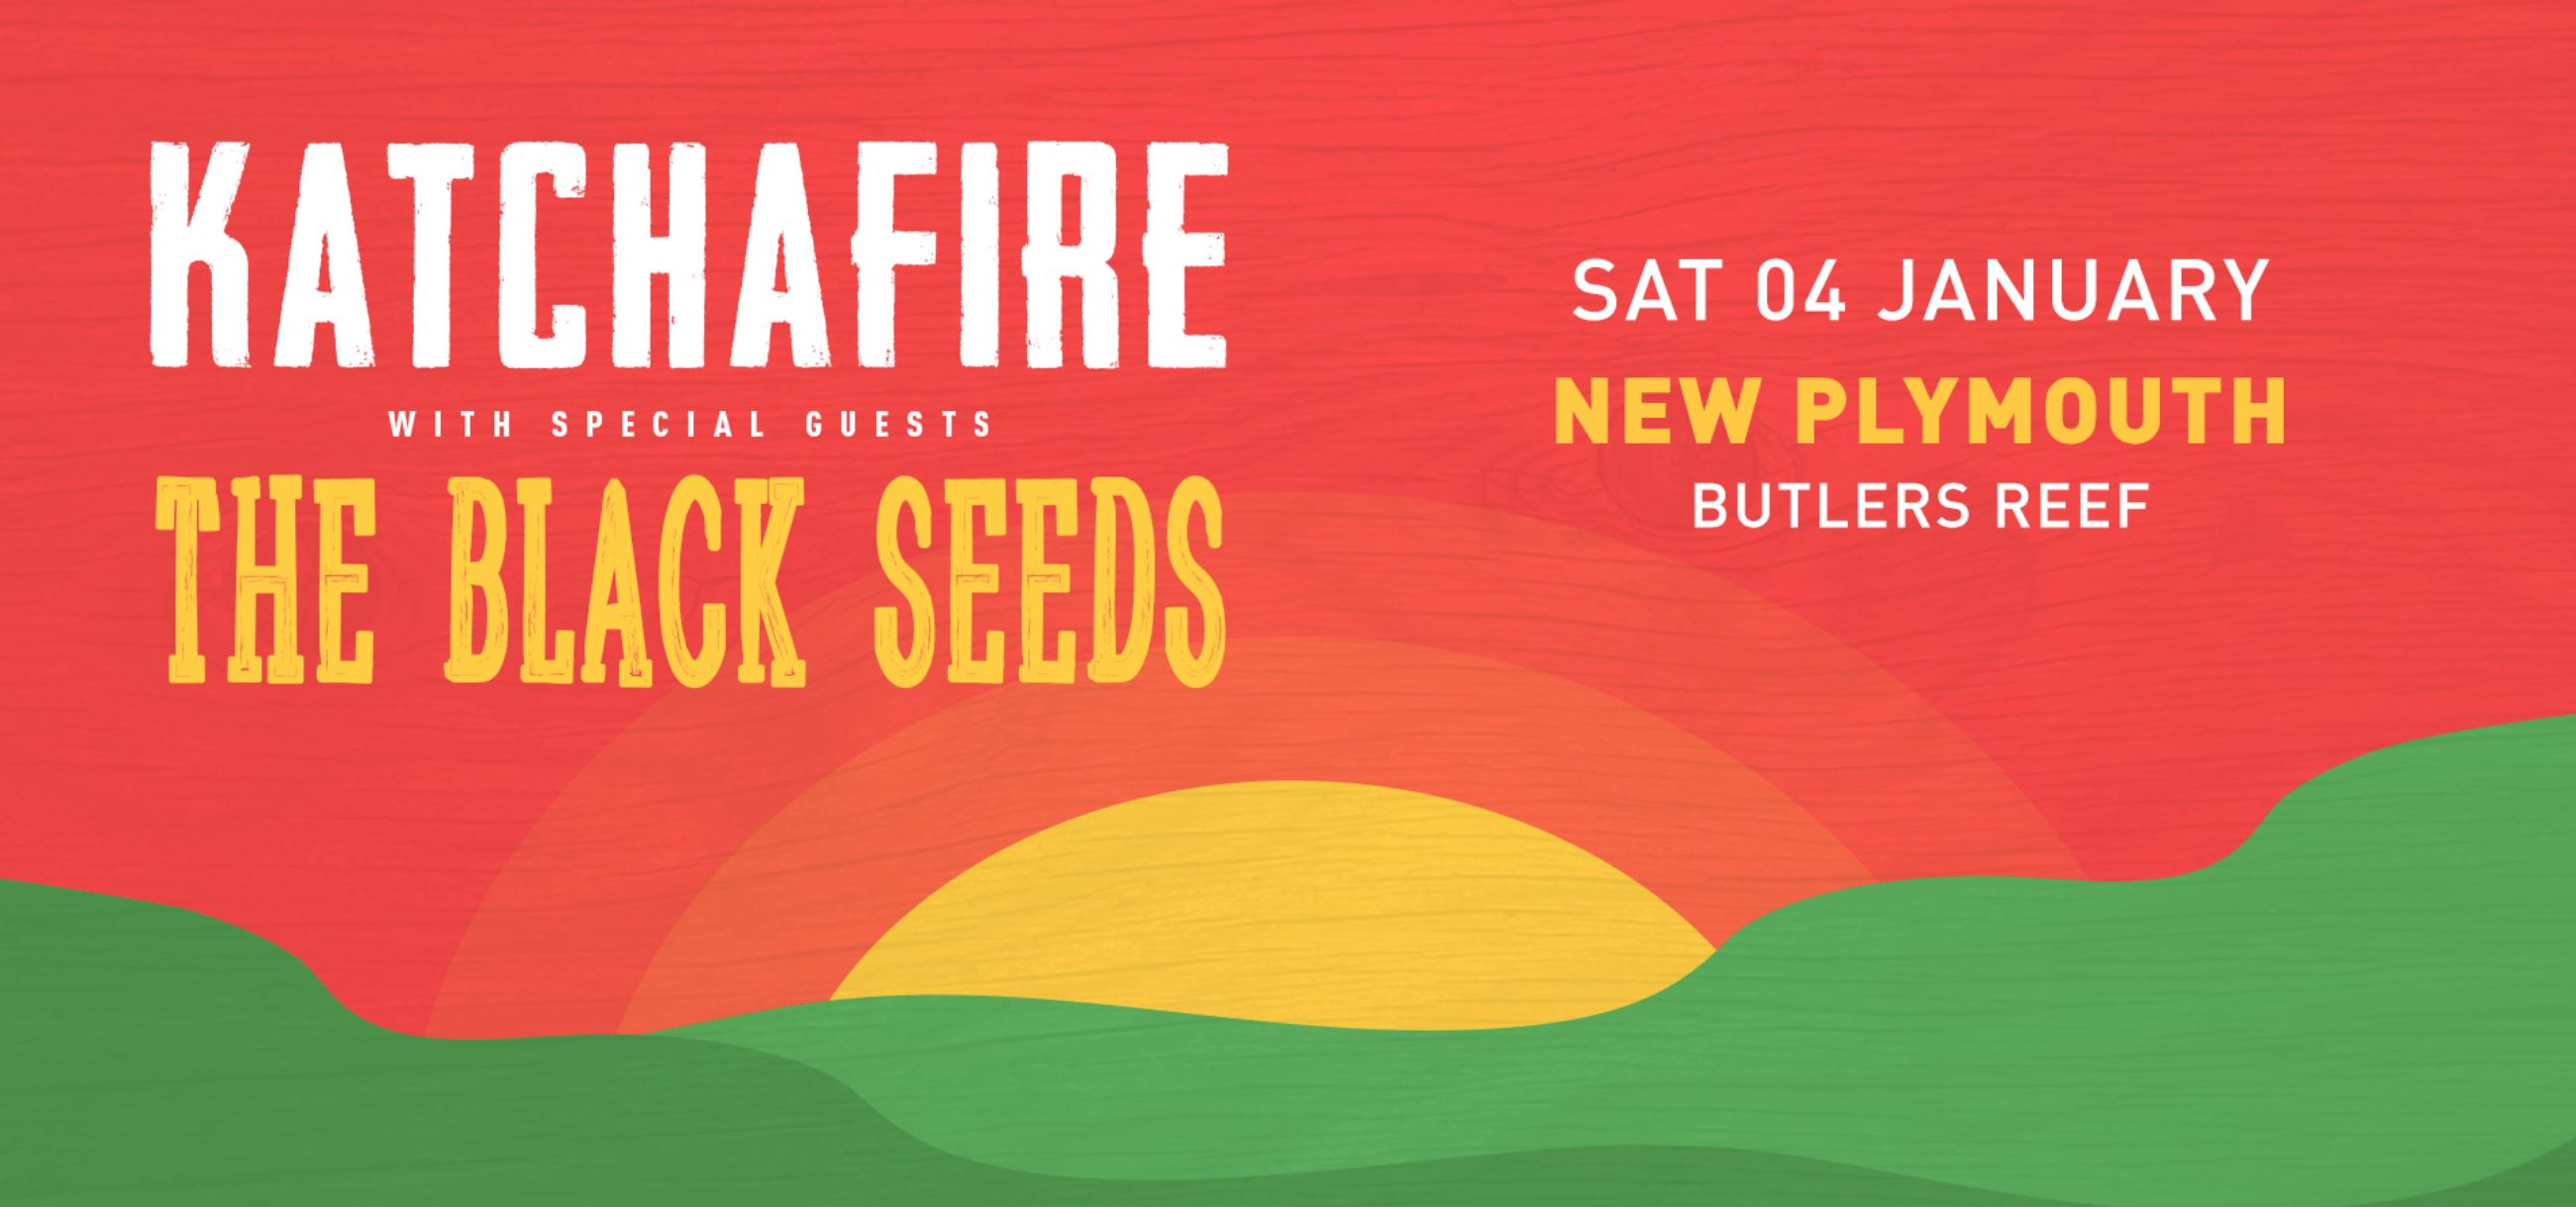 Tickets for Katchafire & The Black Seeds - New Plymouth in Oakura from Ticketspace